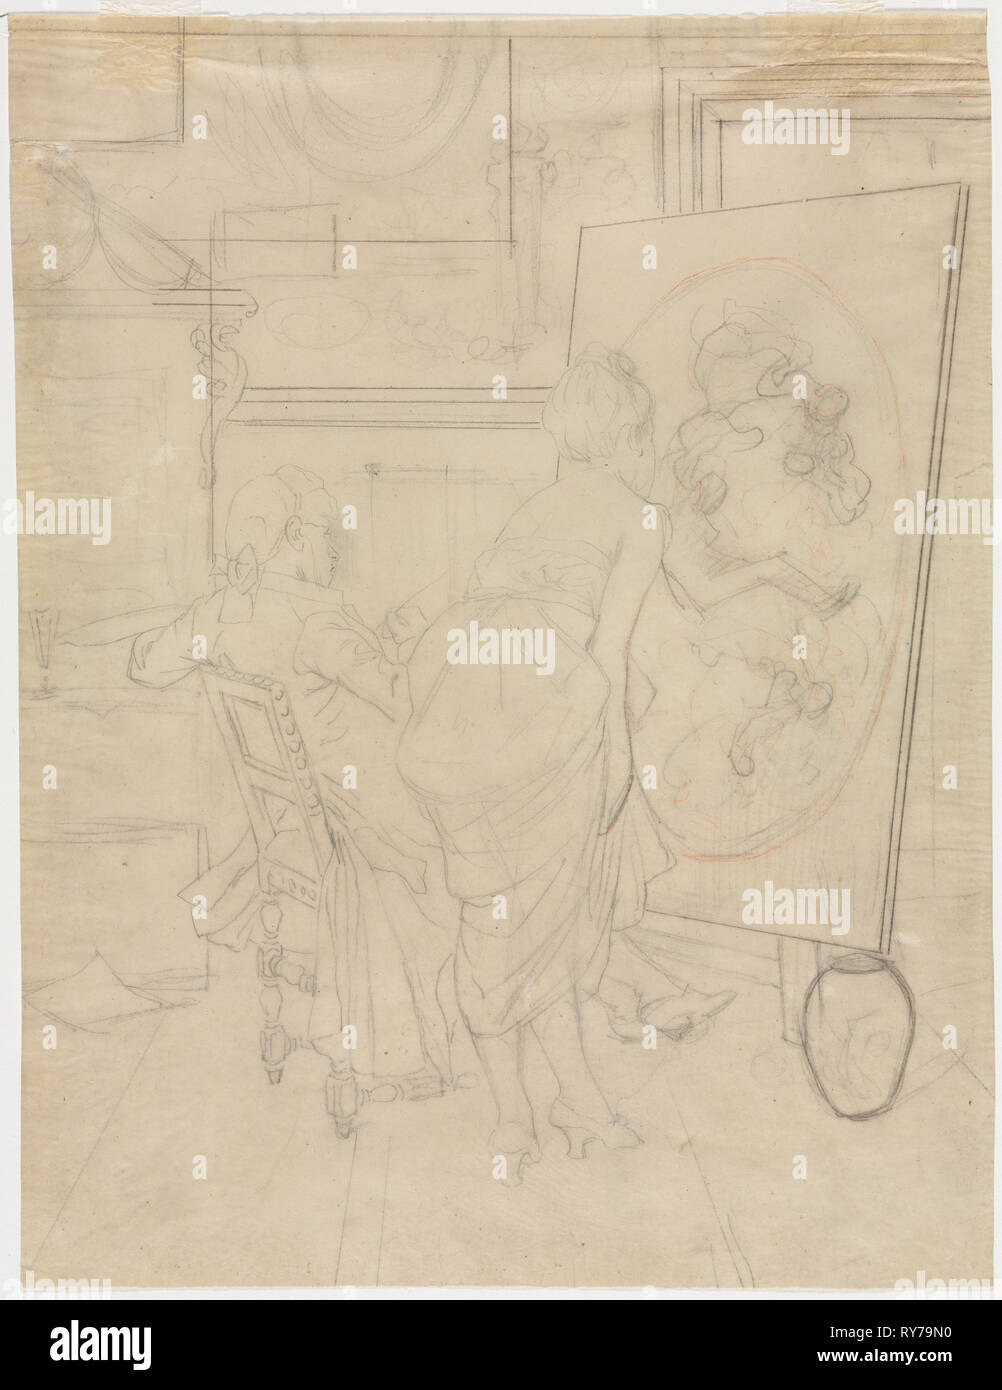 Cartoon for The Opinion of the Model. Charles Bargue (French, 1826-1883). Graphite with red colored pencil; sheet: 28.8 x 22 cm (11 5/16 x 8 11/16 in - Stock Image